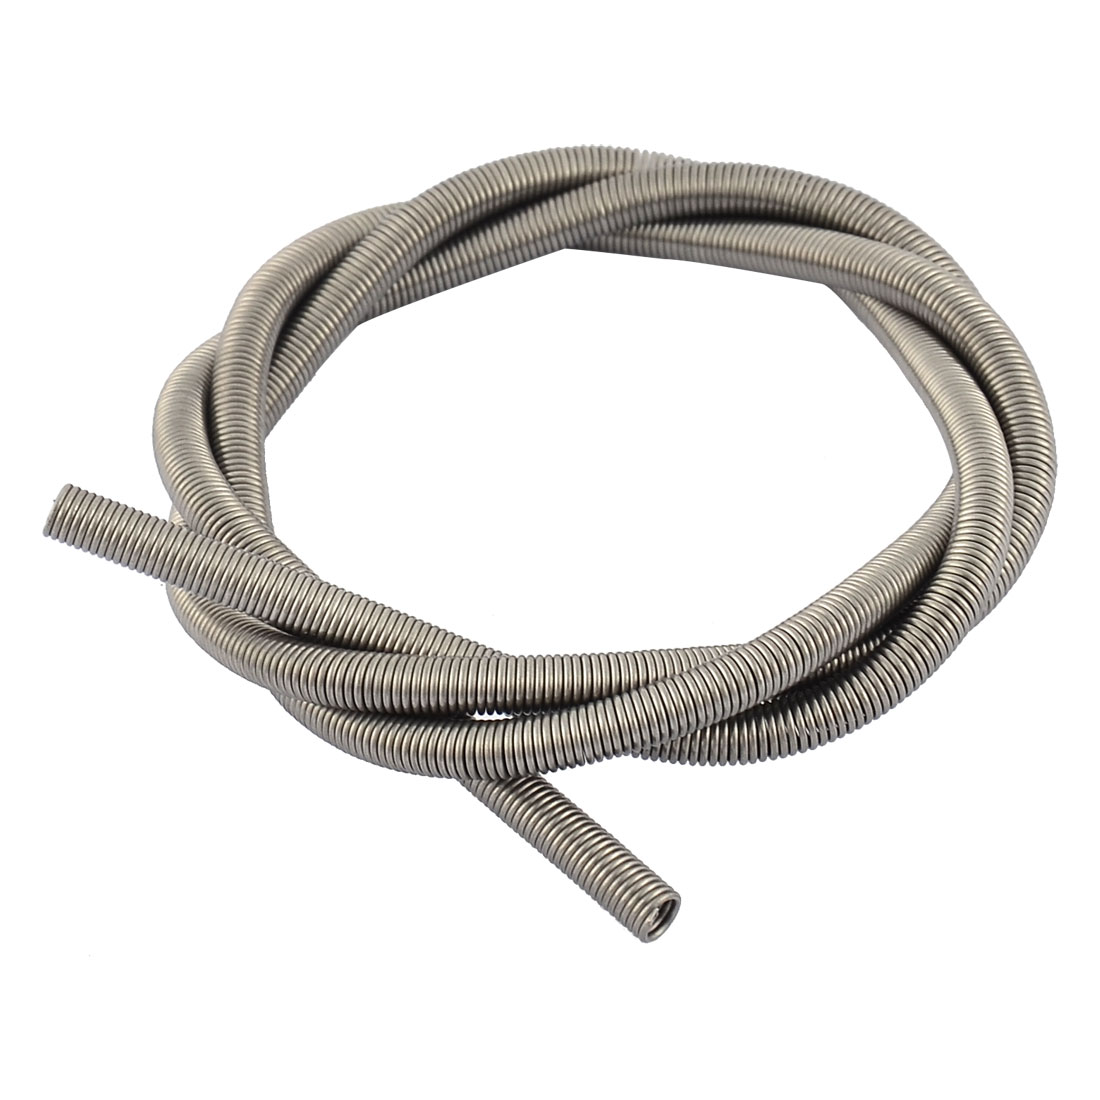 1500W Pottery Kilns Furnaces Casting Heating Element Coil Wire 6mm Dia.